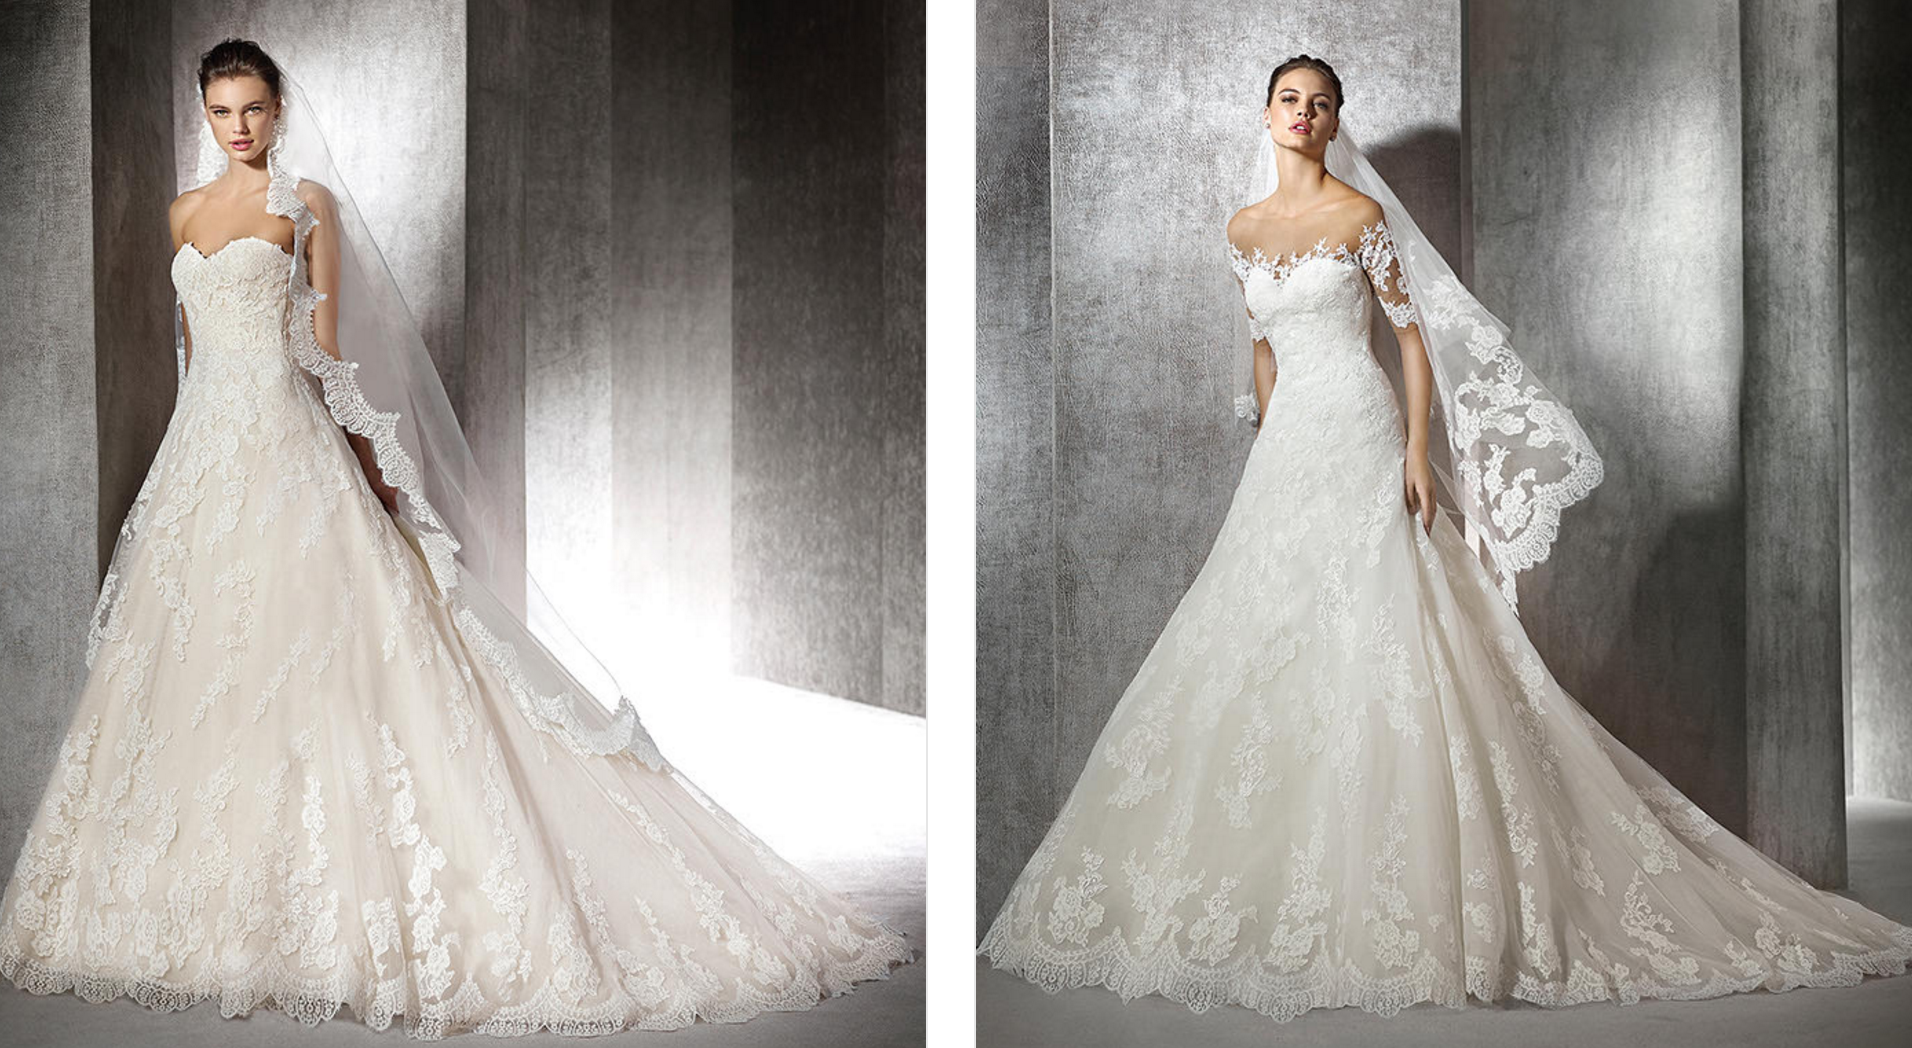 St. Patrick bridal collection 2016